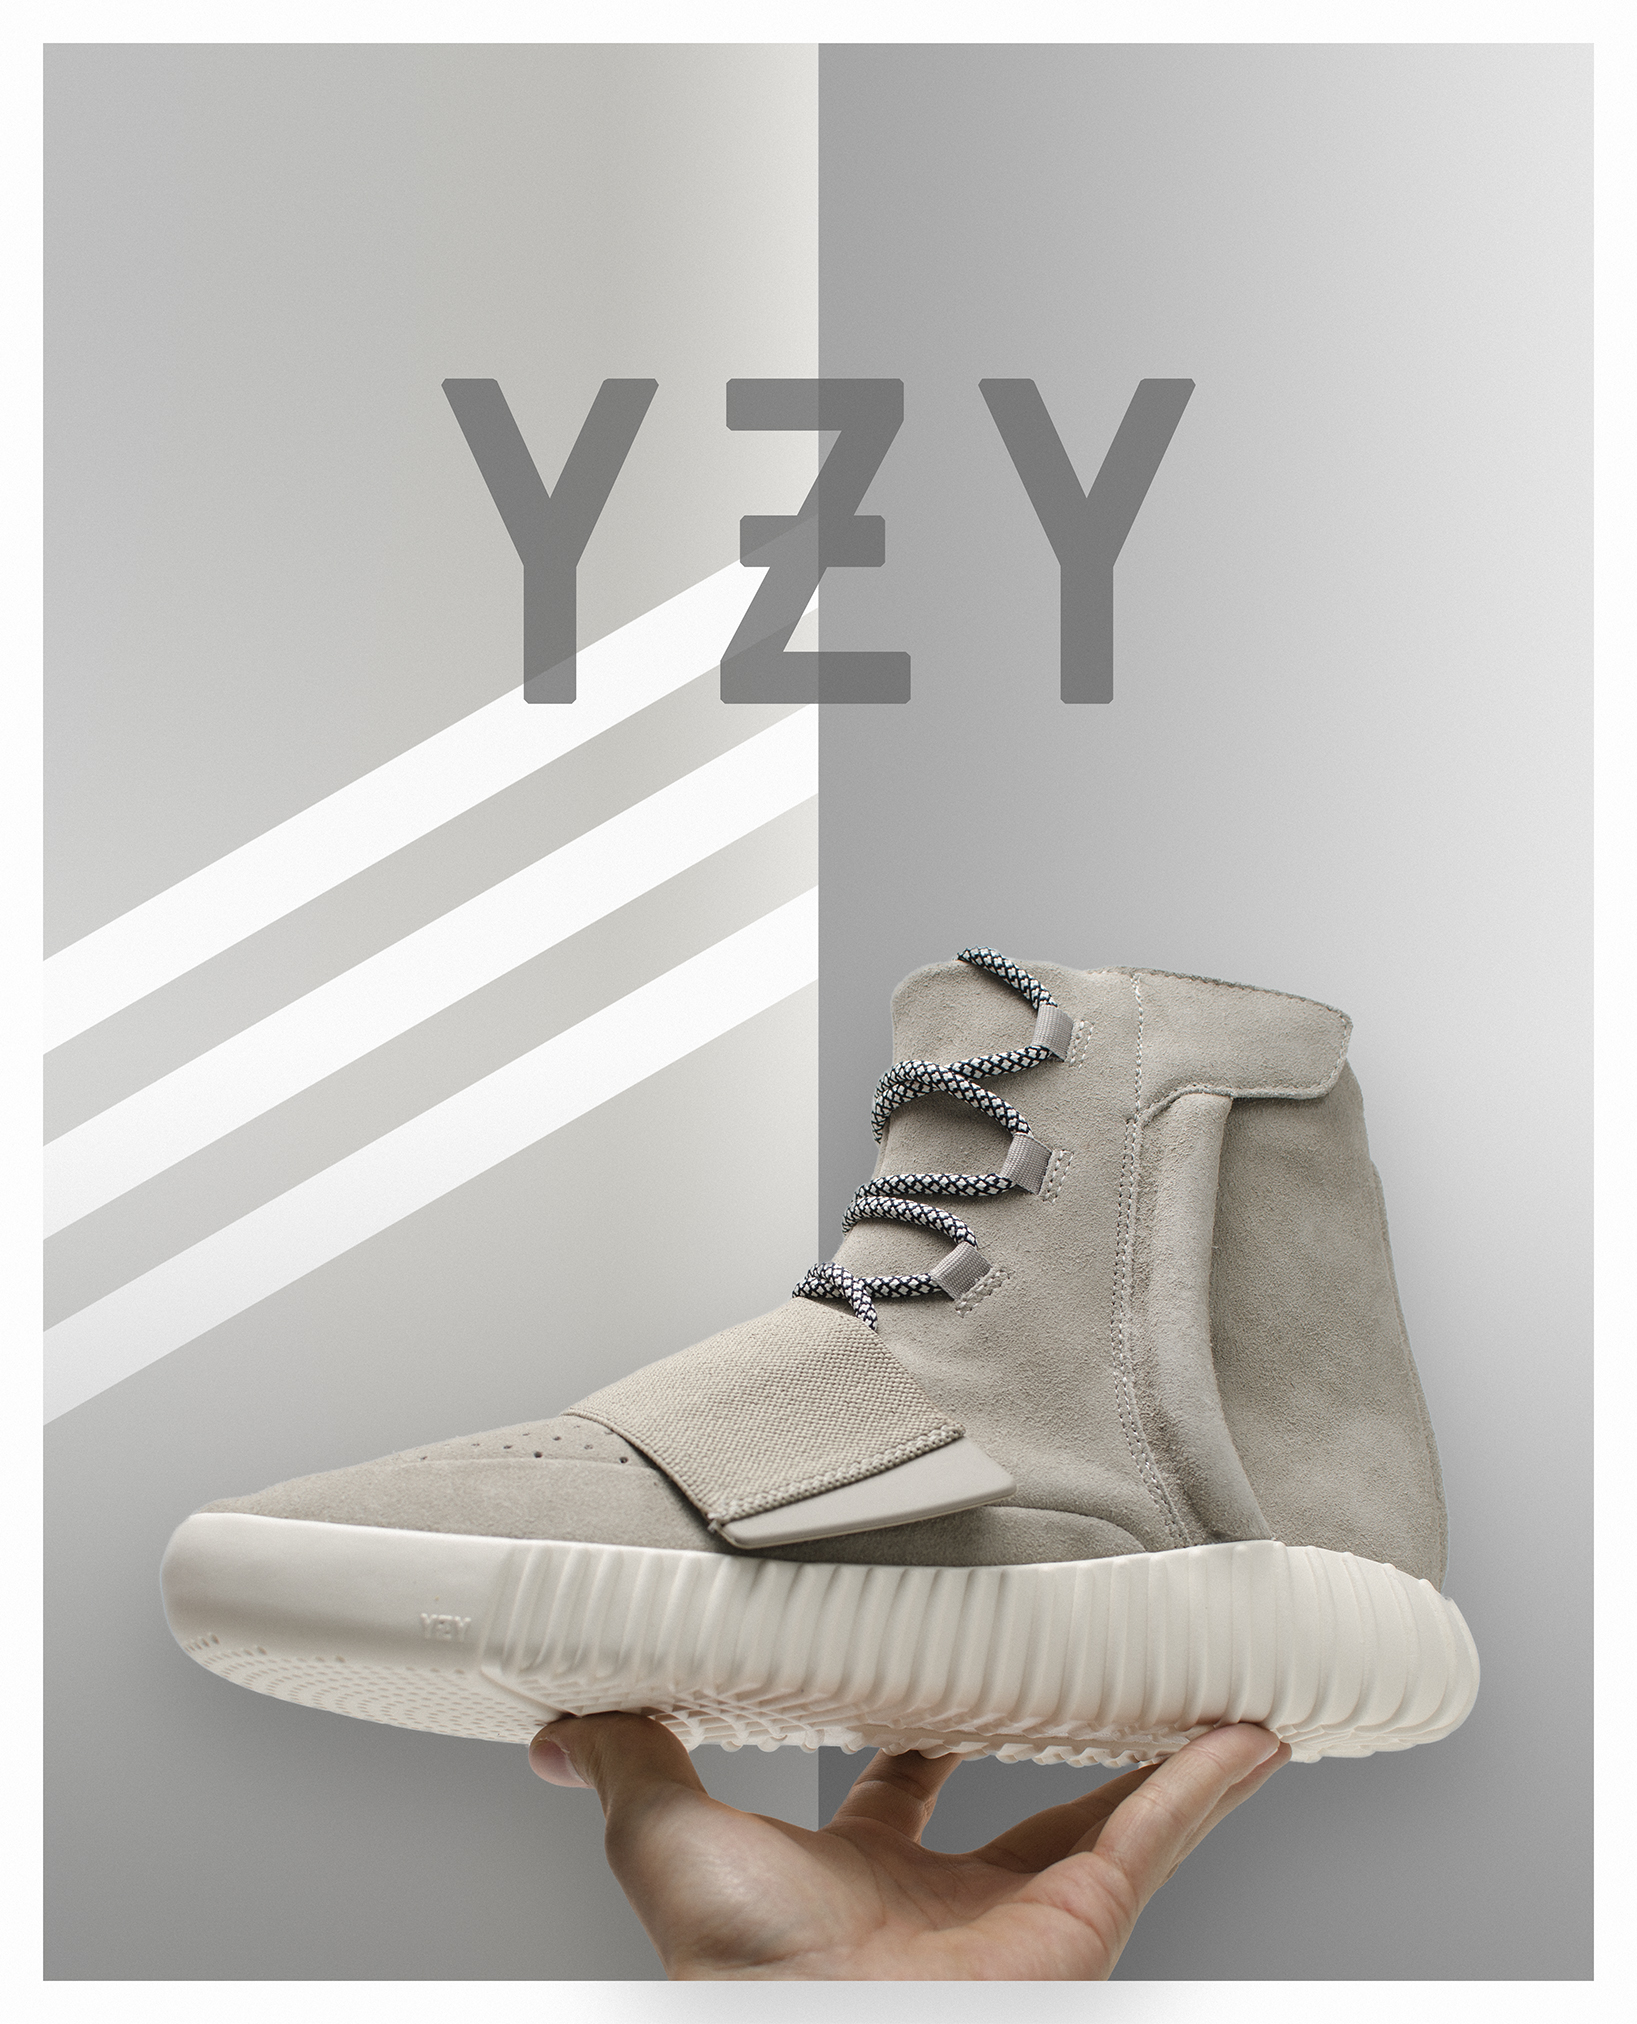 sergio-loes-producto-adidas-yeezy-boost-750